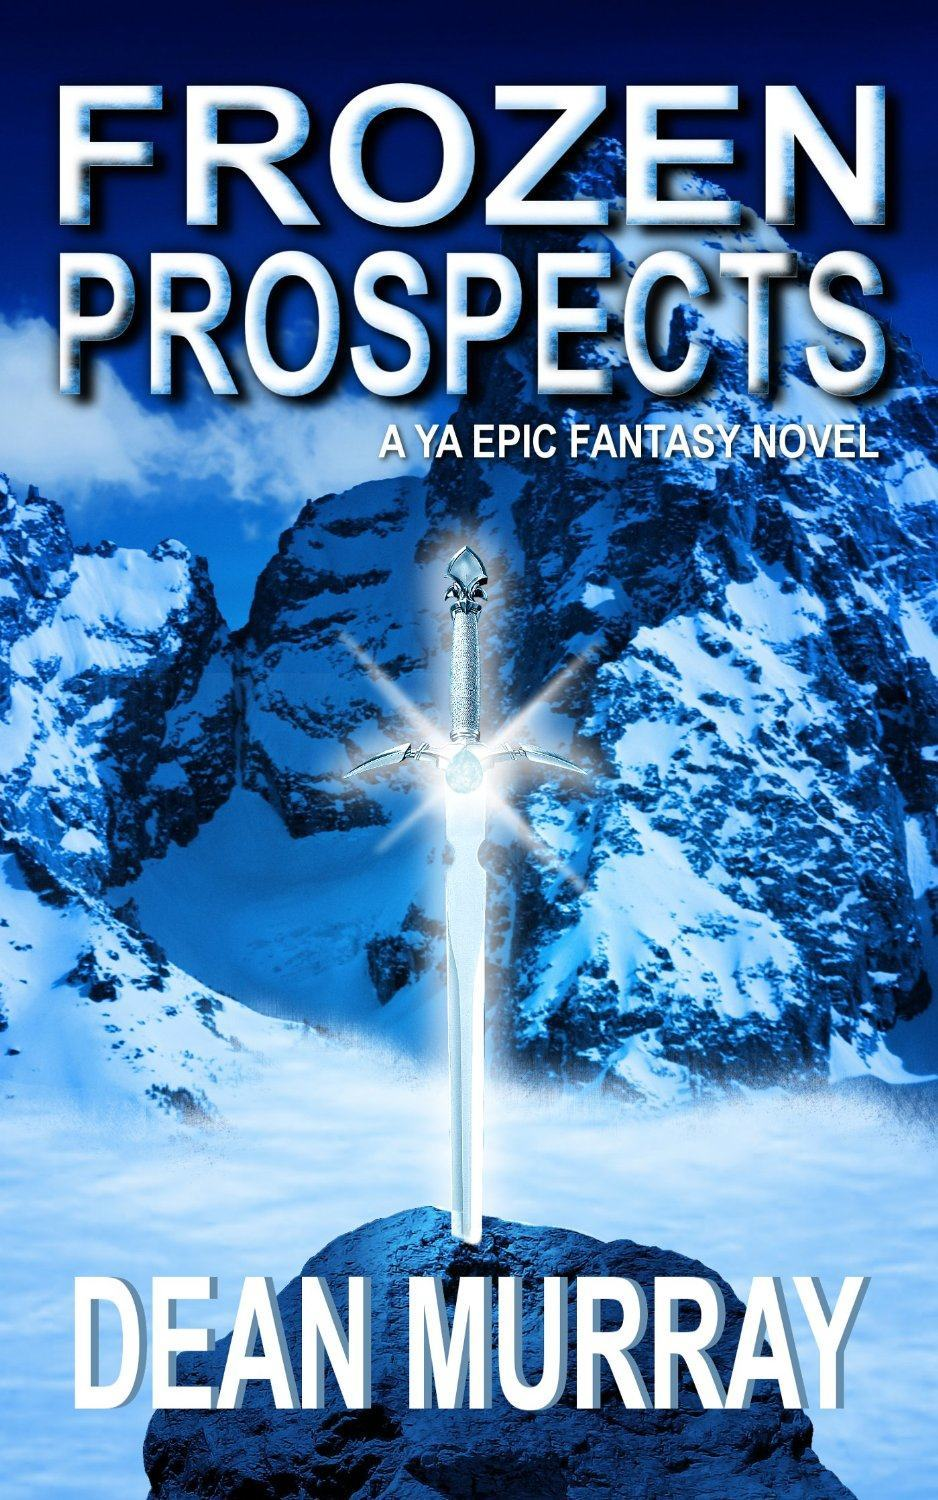 Frozen Prospects: The Guadel Chronicles, Volume 1 by Dean Murray